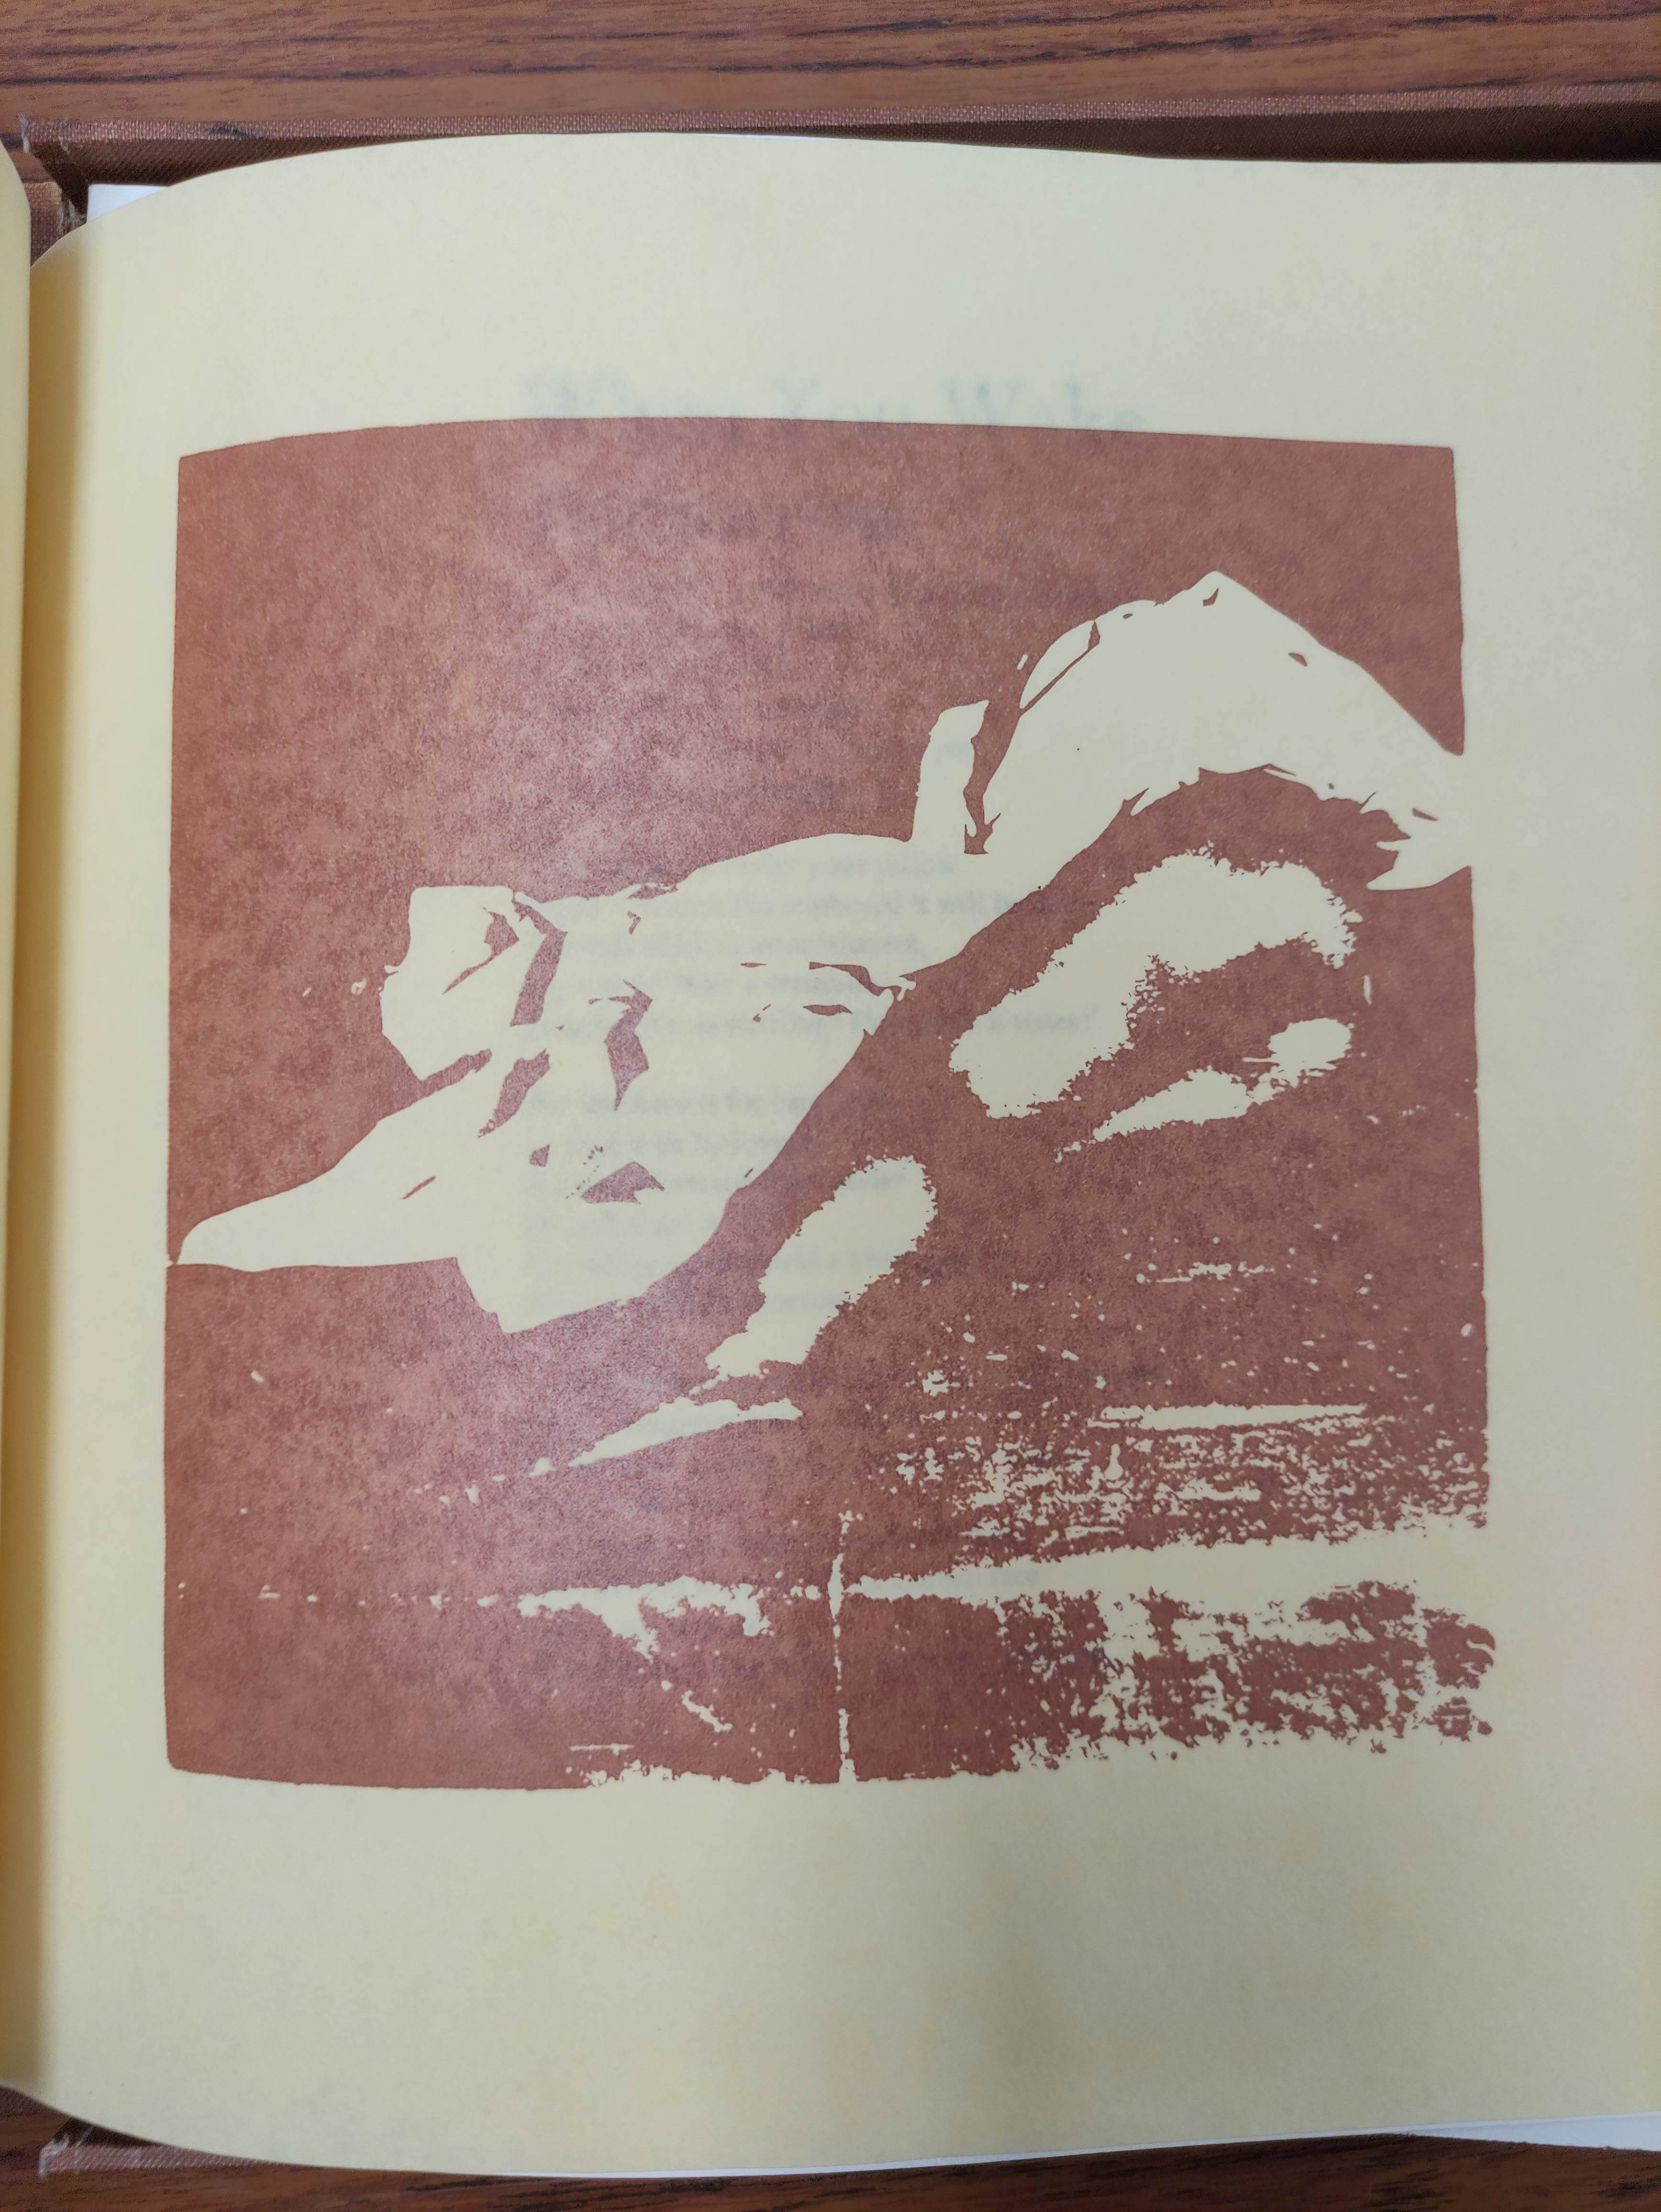 BENVENISTE PIP (Illus).When You Wake Tomorrow by Brian Patten. Ltd. ed. 21/125. Signed by author & - Image 8 of 14